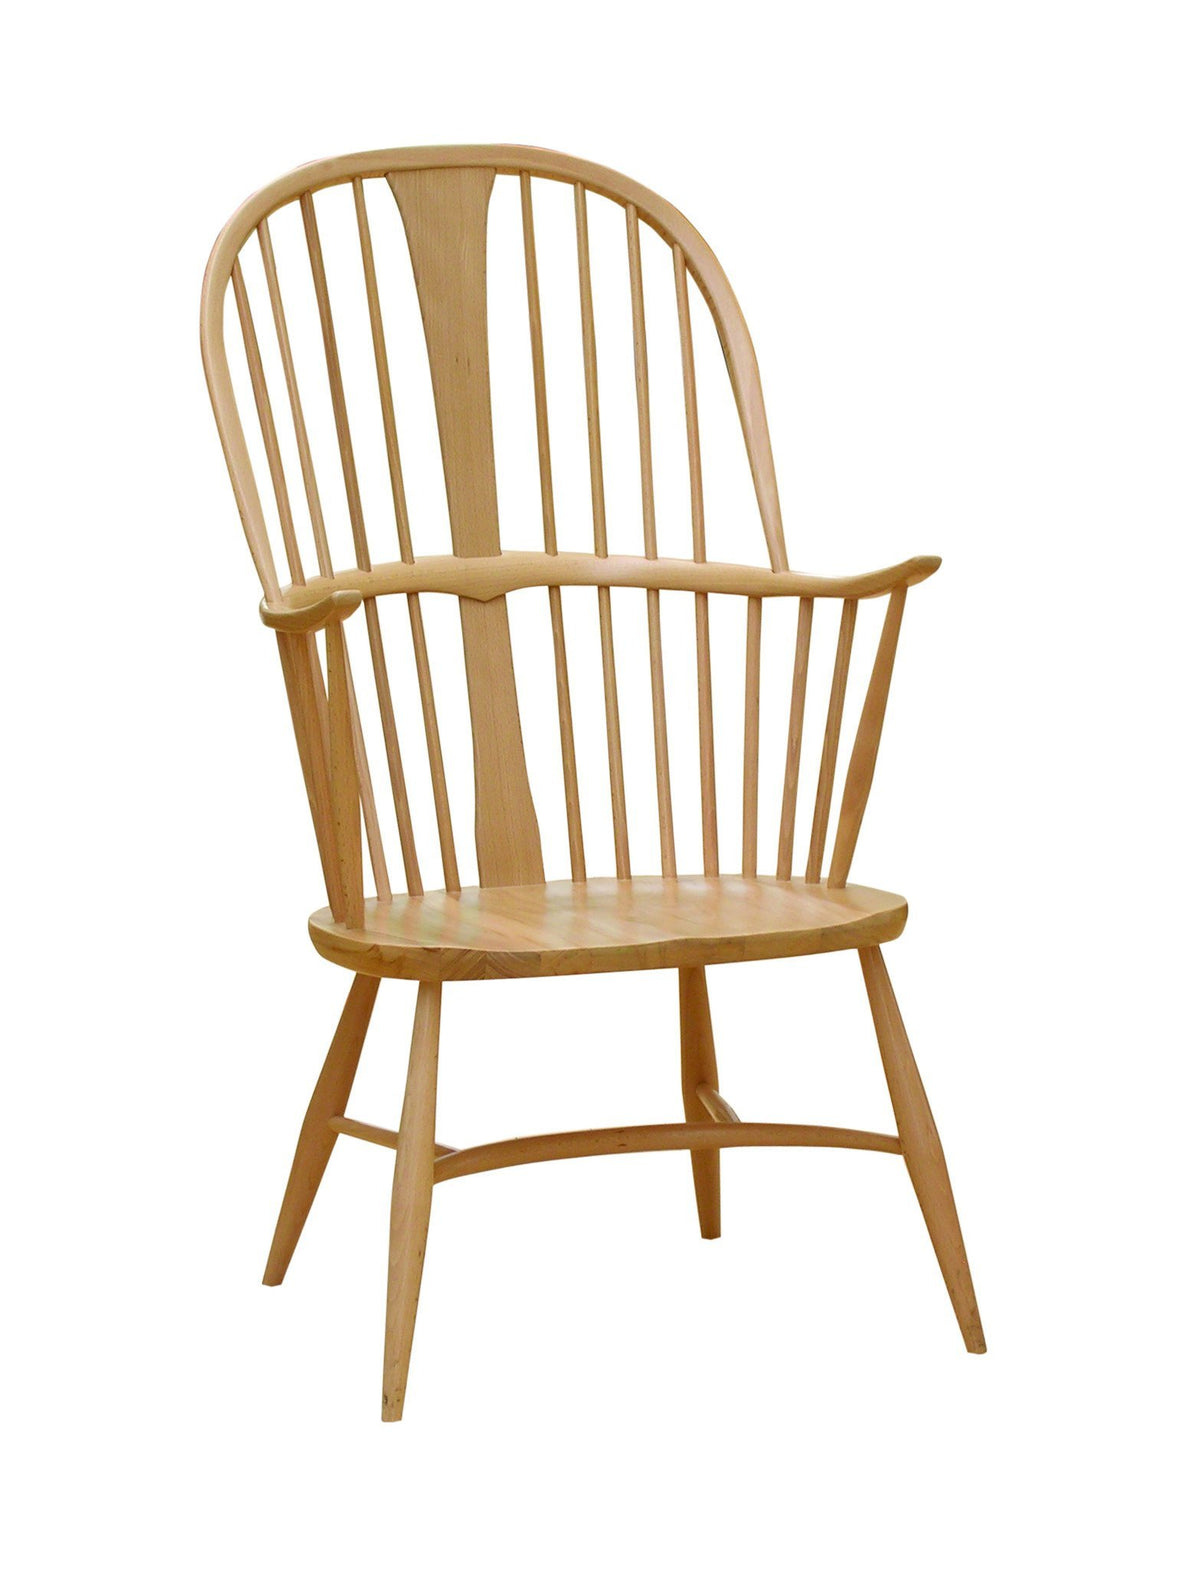 Originals Chairmakers Chair-Ercol-Contract Furniture Store